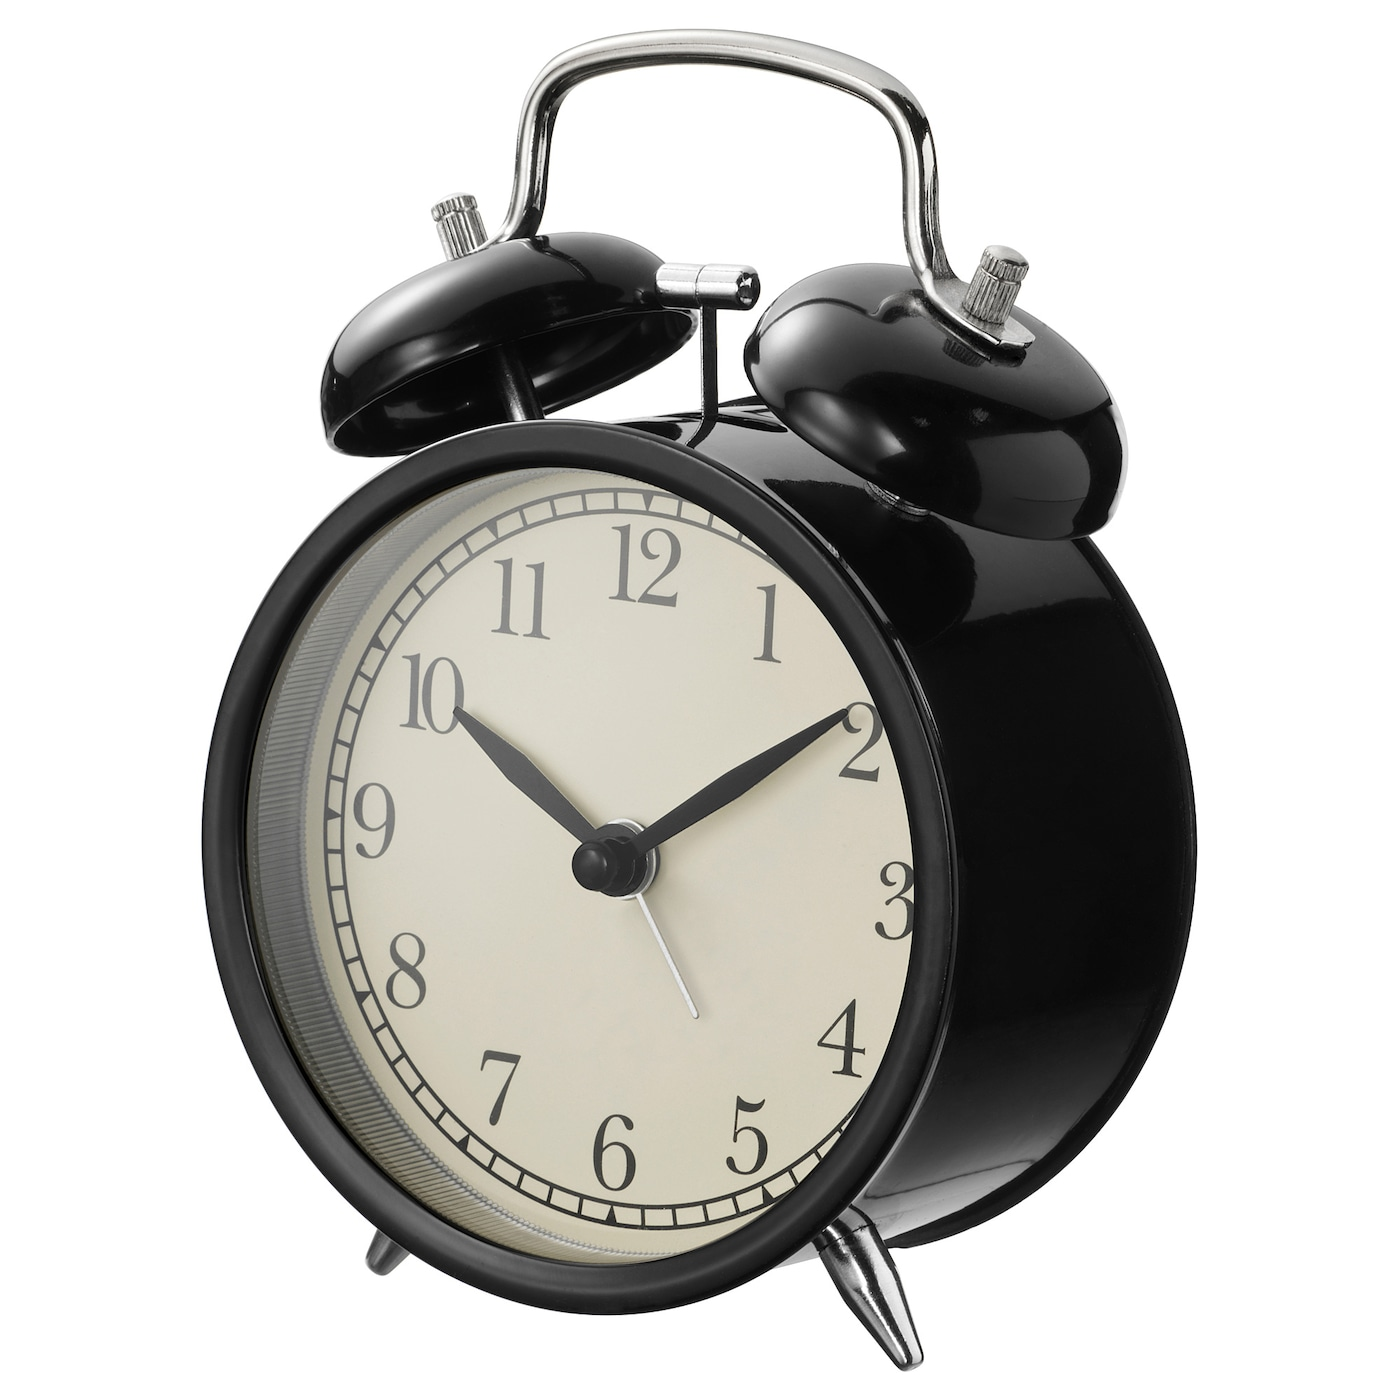 IKEA DEKAD alarm clock No disturbing ticking sounds since the clock has a silent quartz movement.